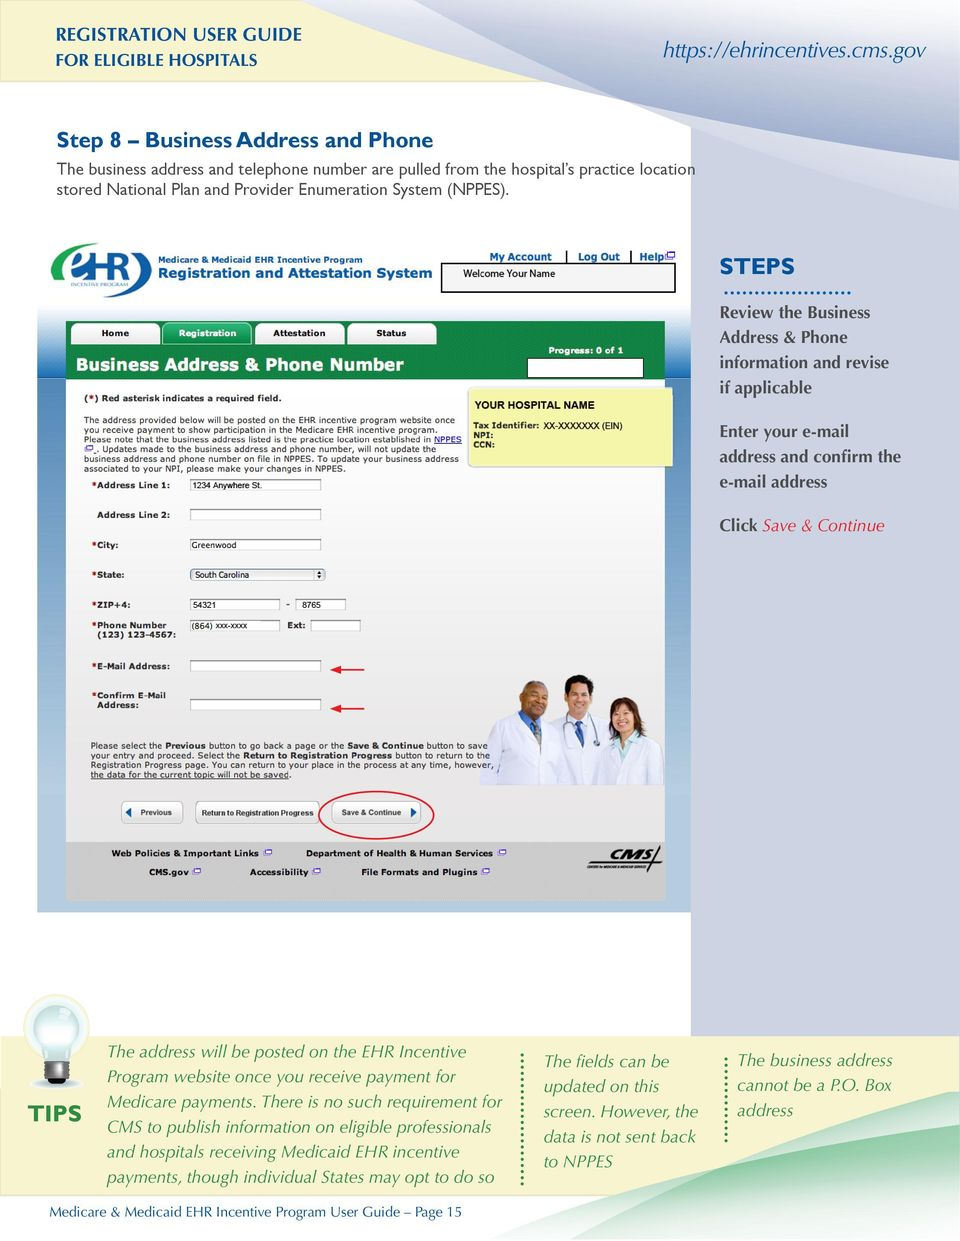 Program website once you receive payment for Medicare payments.